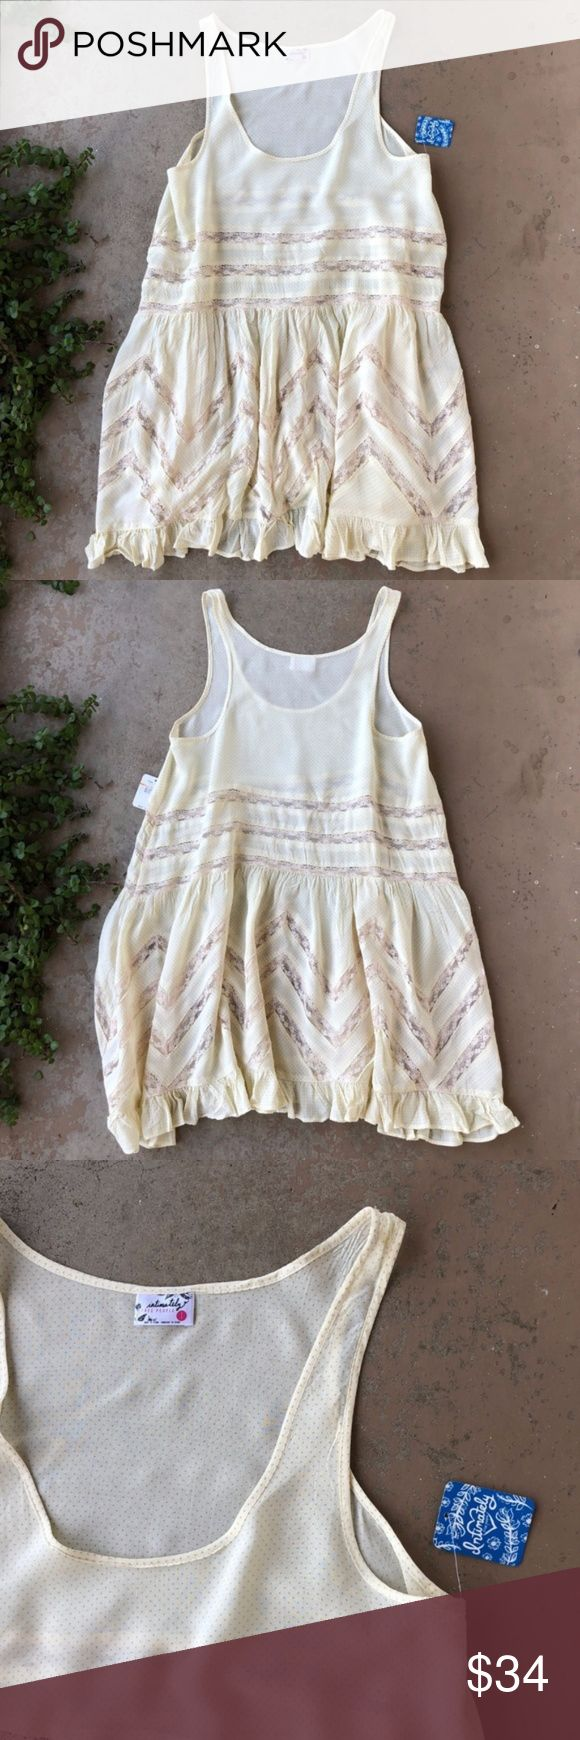 Free People Yellow Polka Dot Trapeze Slip Dress Intimately Free People pale yellow polka dot asymmetrical lace slip trapeze dress. Size small, new with tags! Free People Dresses Mini